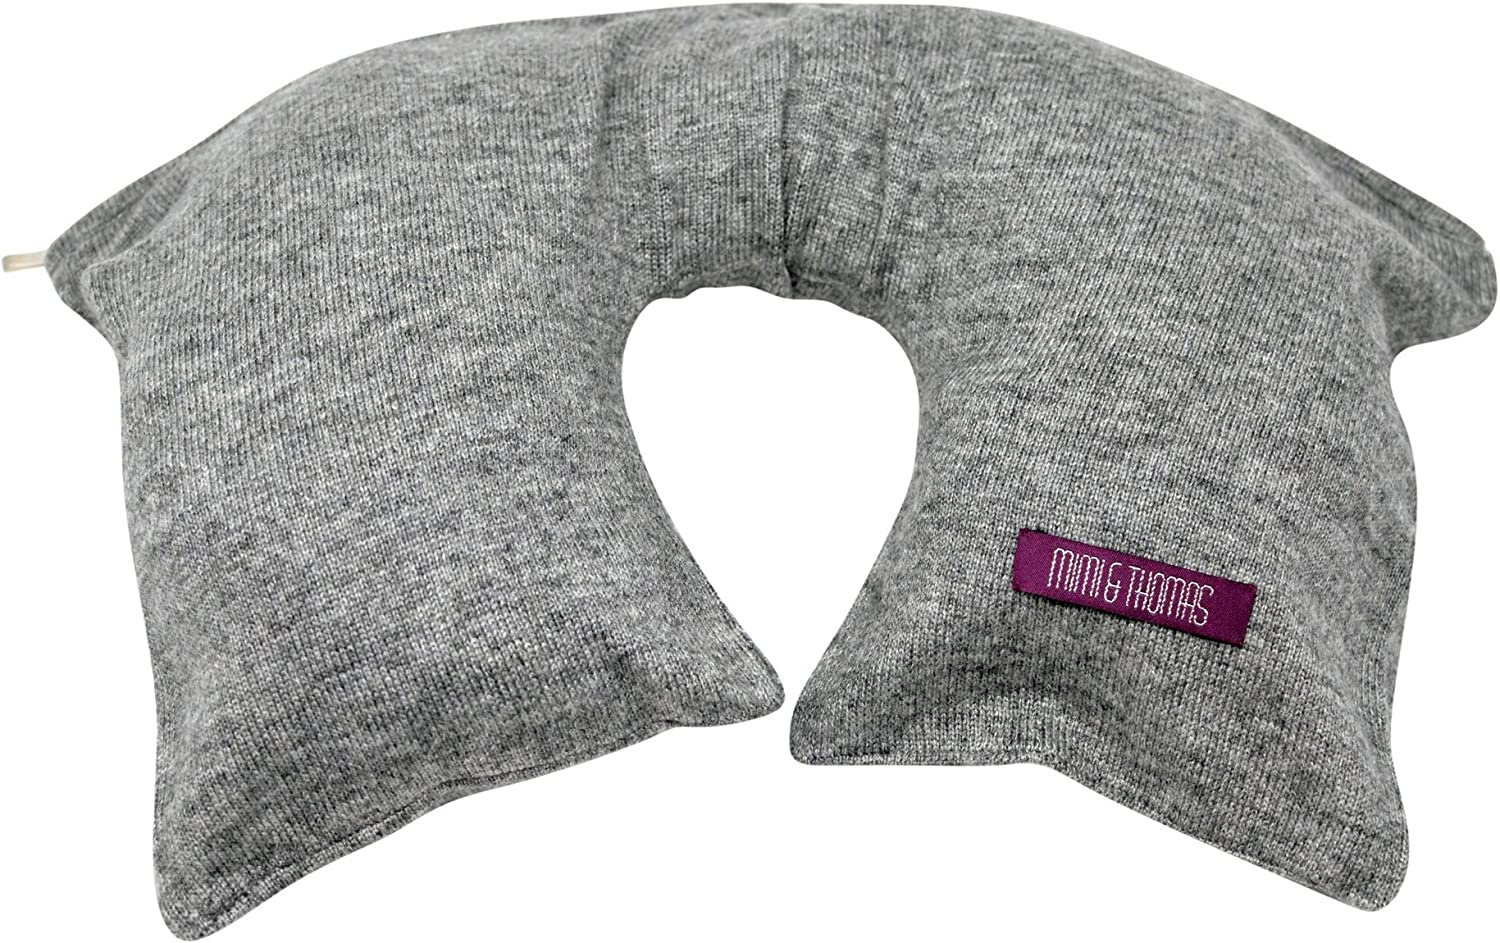 Travel Pillow Travel Blanket Grey Marl 100/% Pure Cashmere Travel Set Eye mask Socks in Carry case